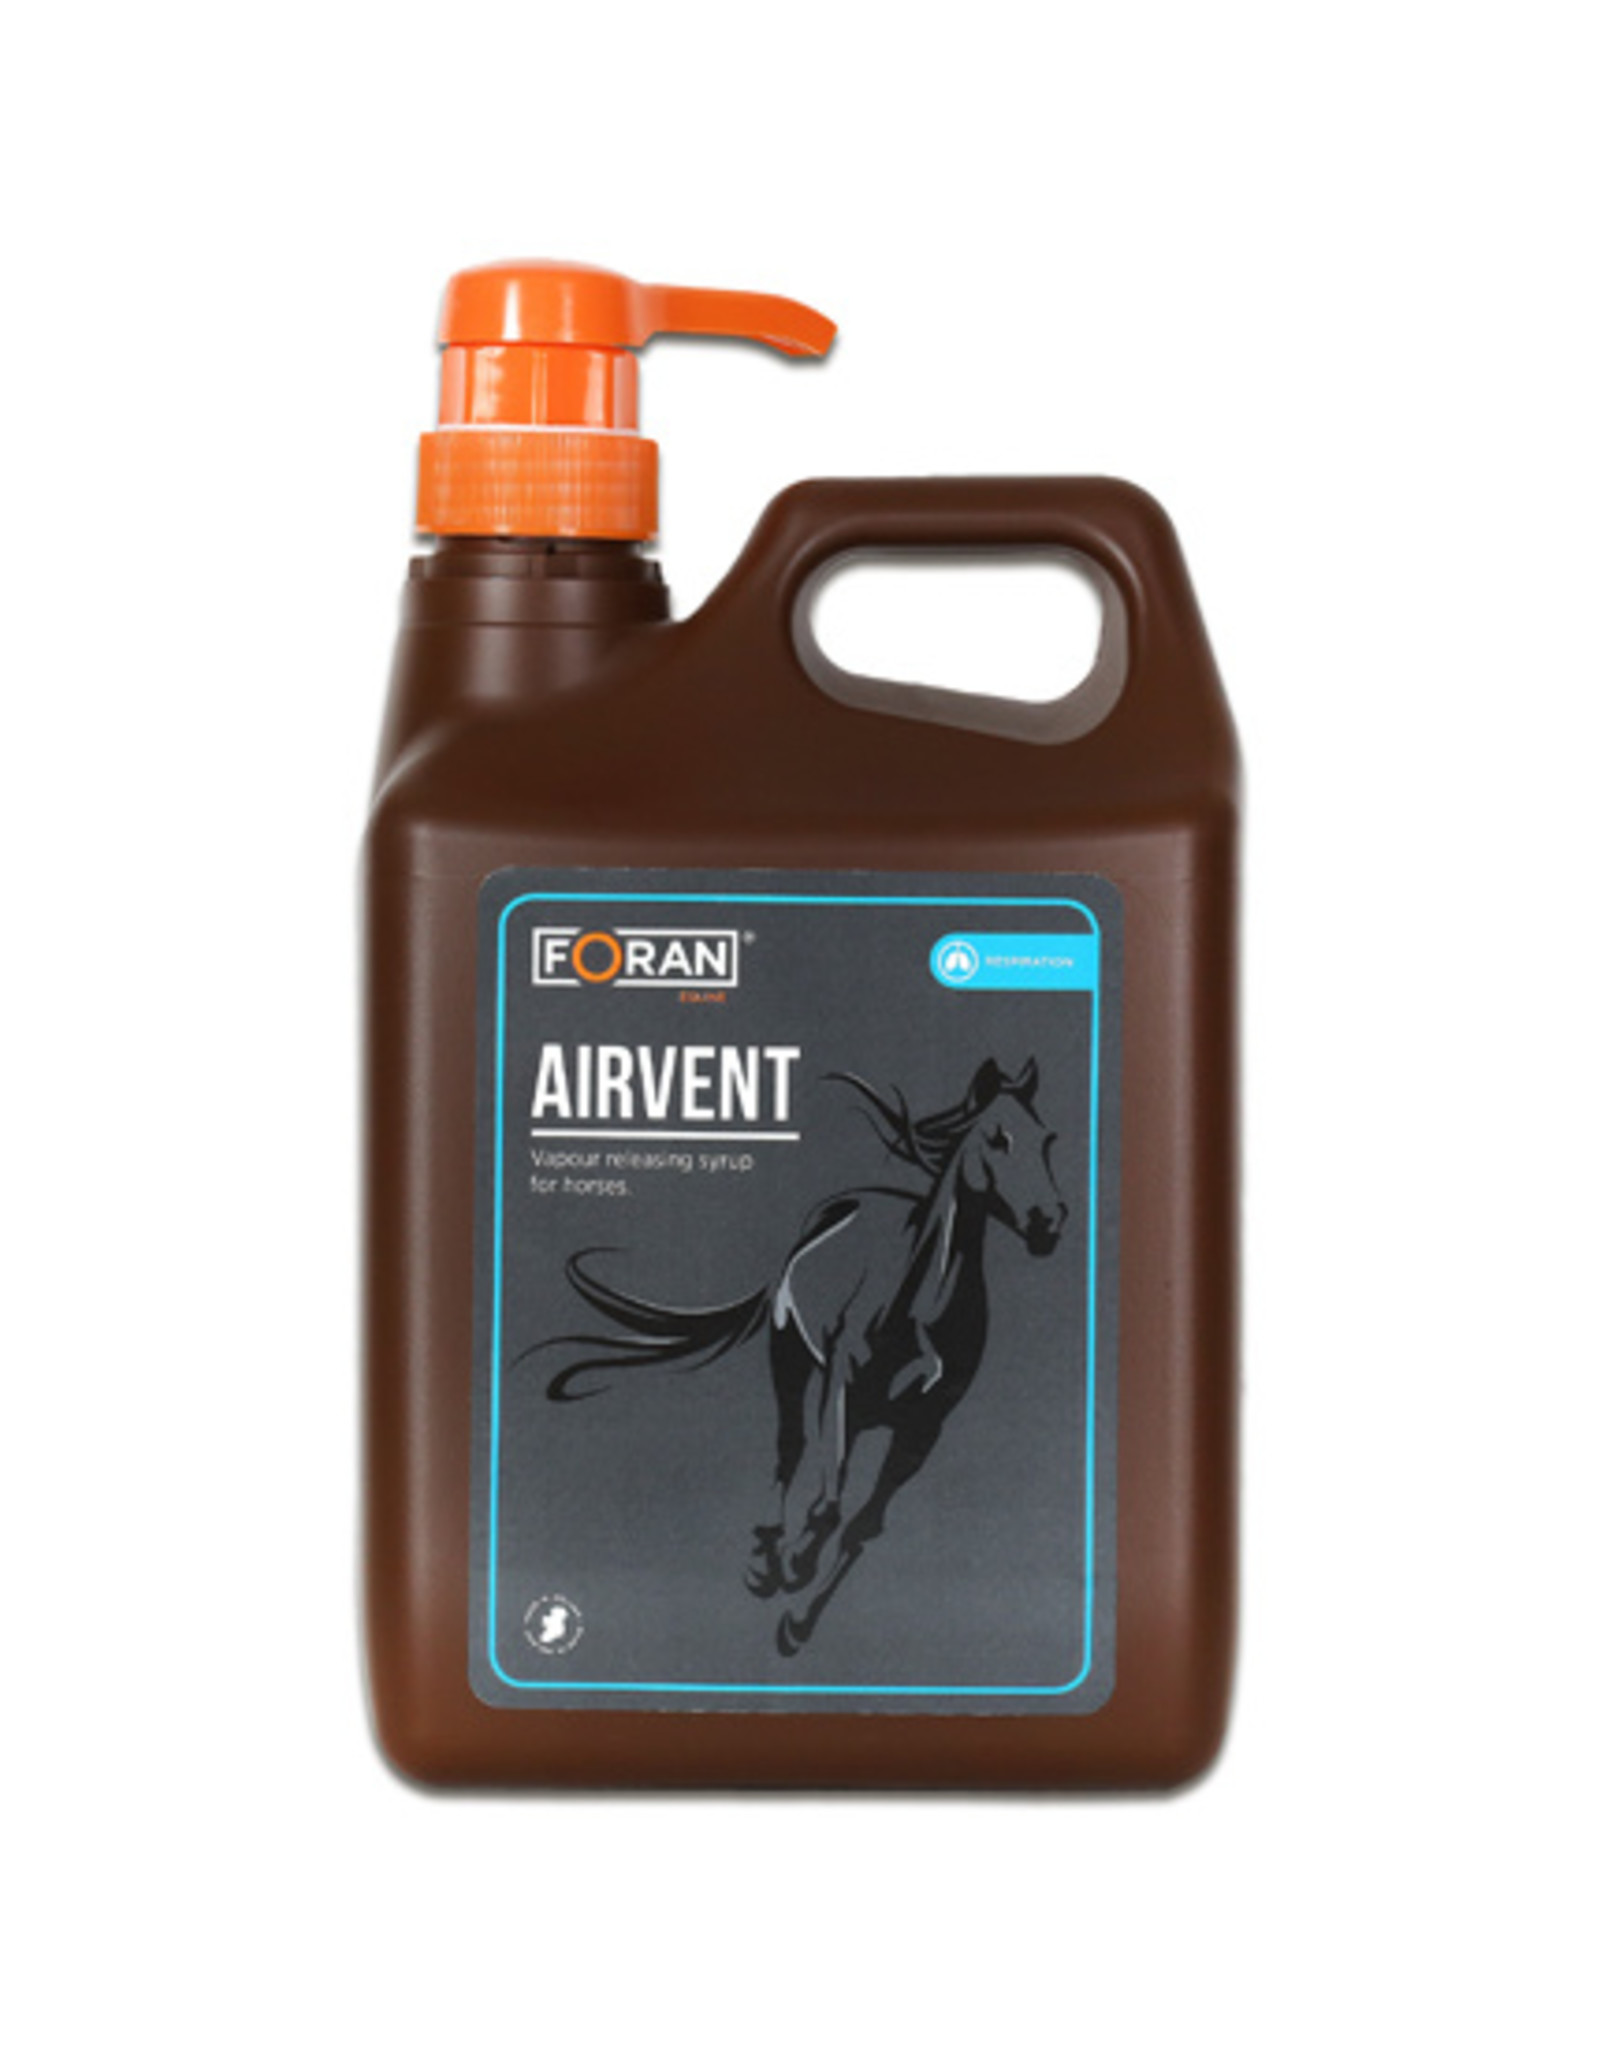 Foran AIRvent Syrup